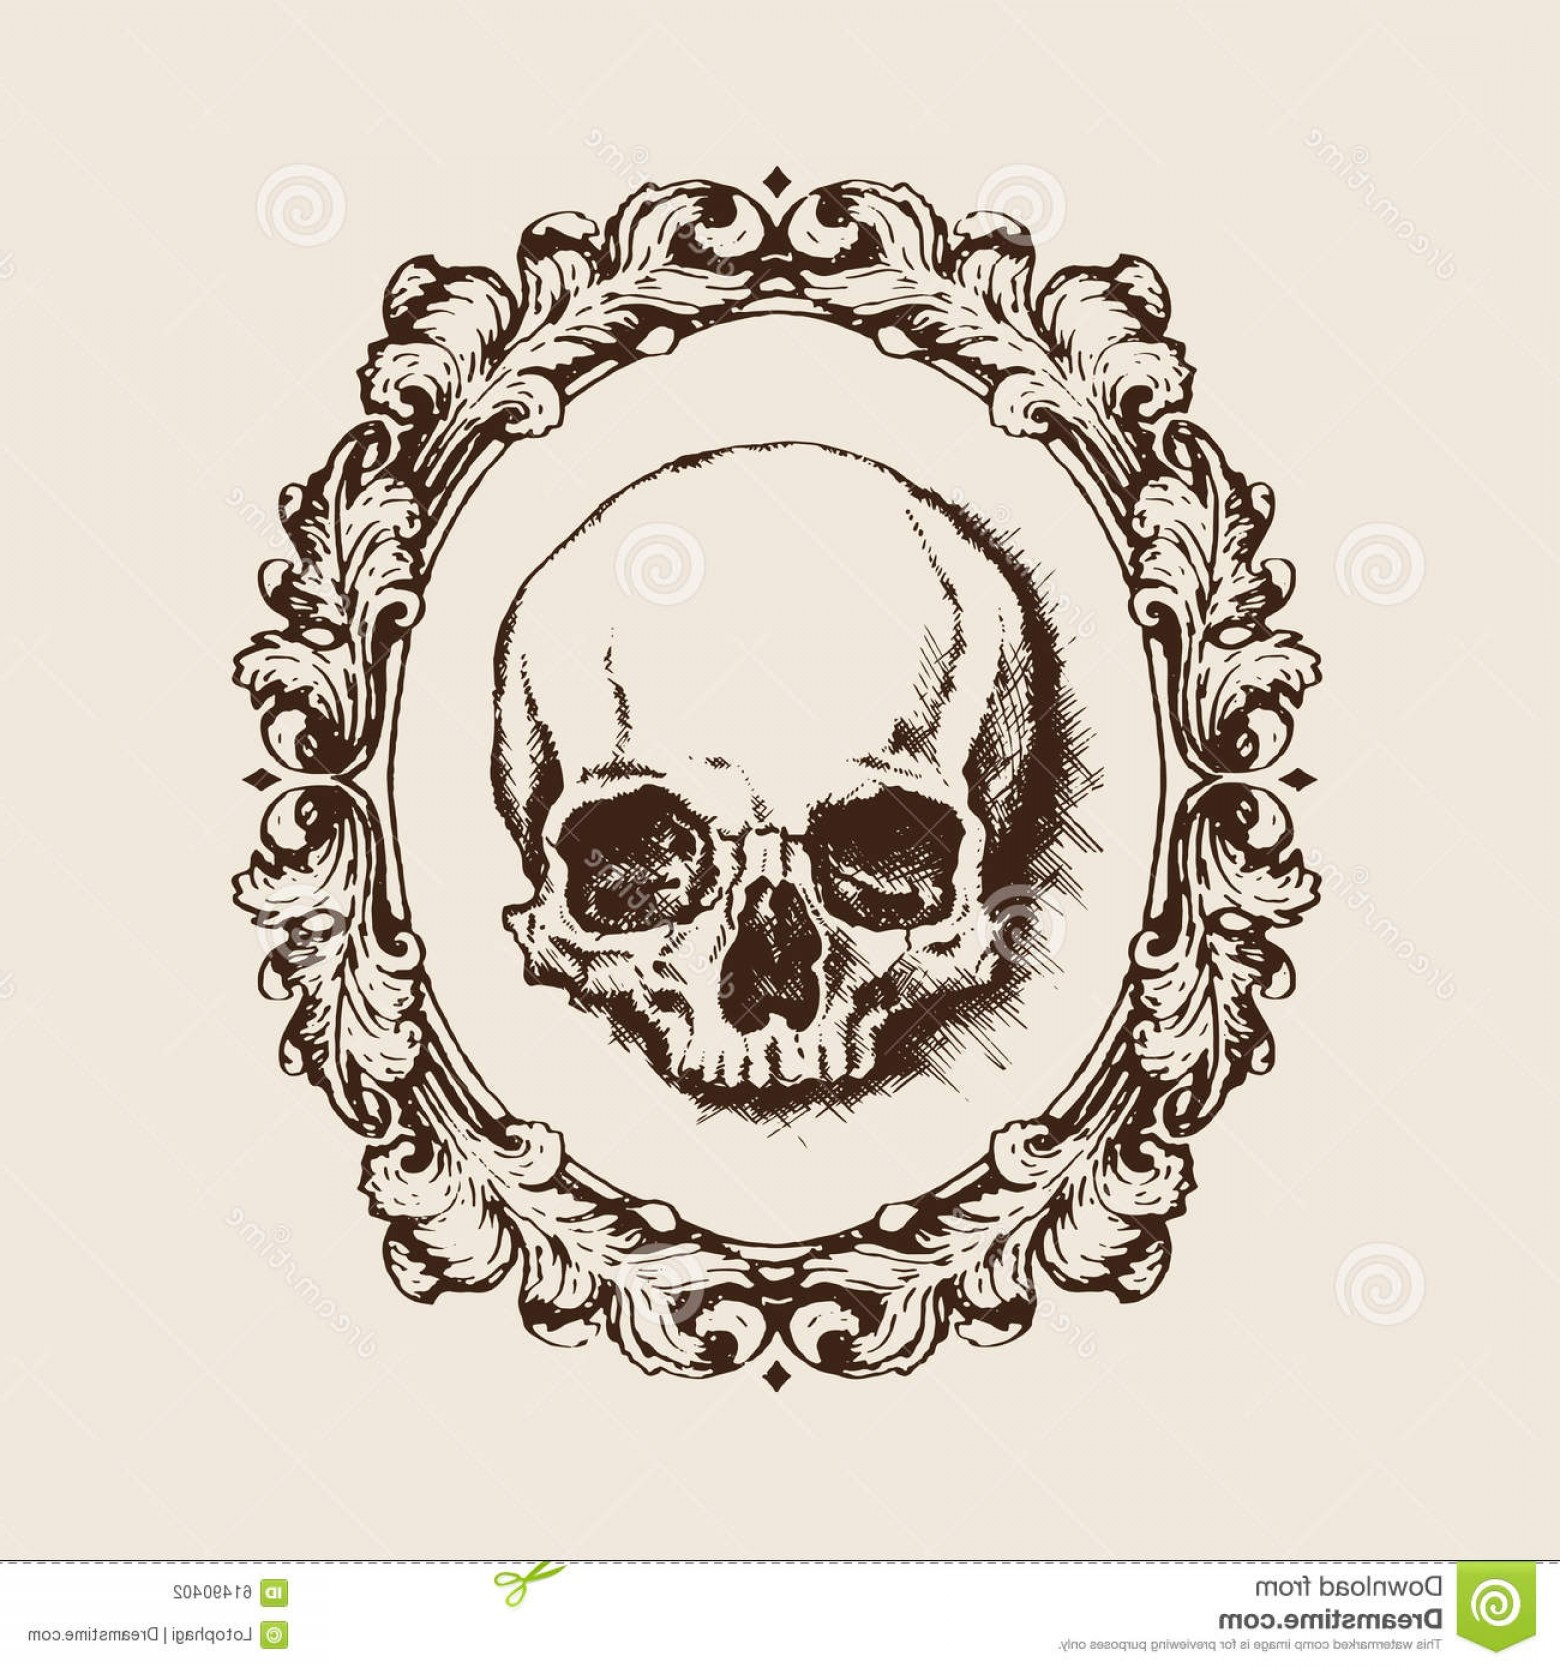 Filigree Oval Frame Vector: Stock Illustration Human Skull Filigree Frame Vector Illustration Hand Drawn Oval Image